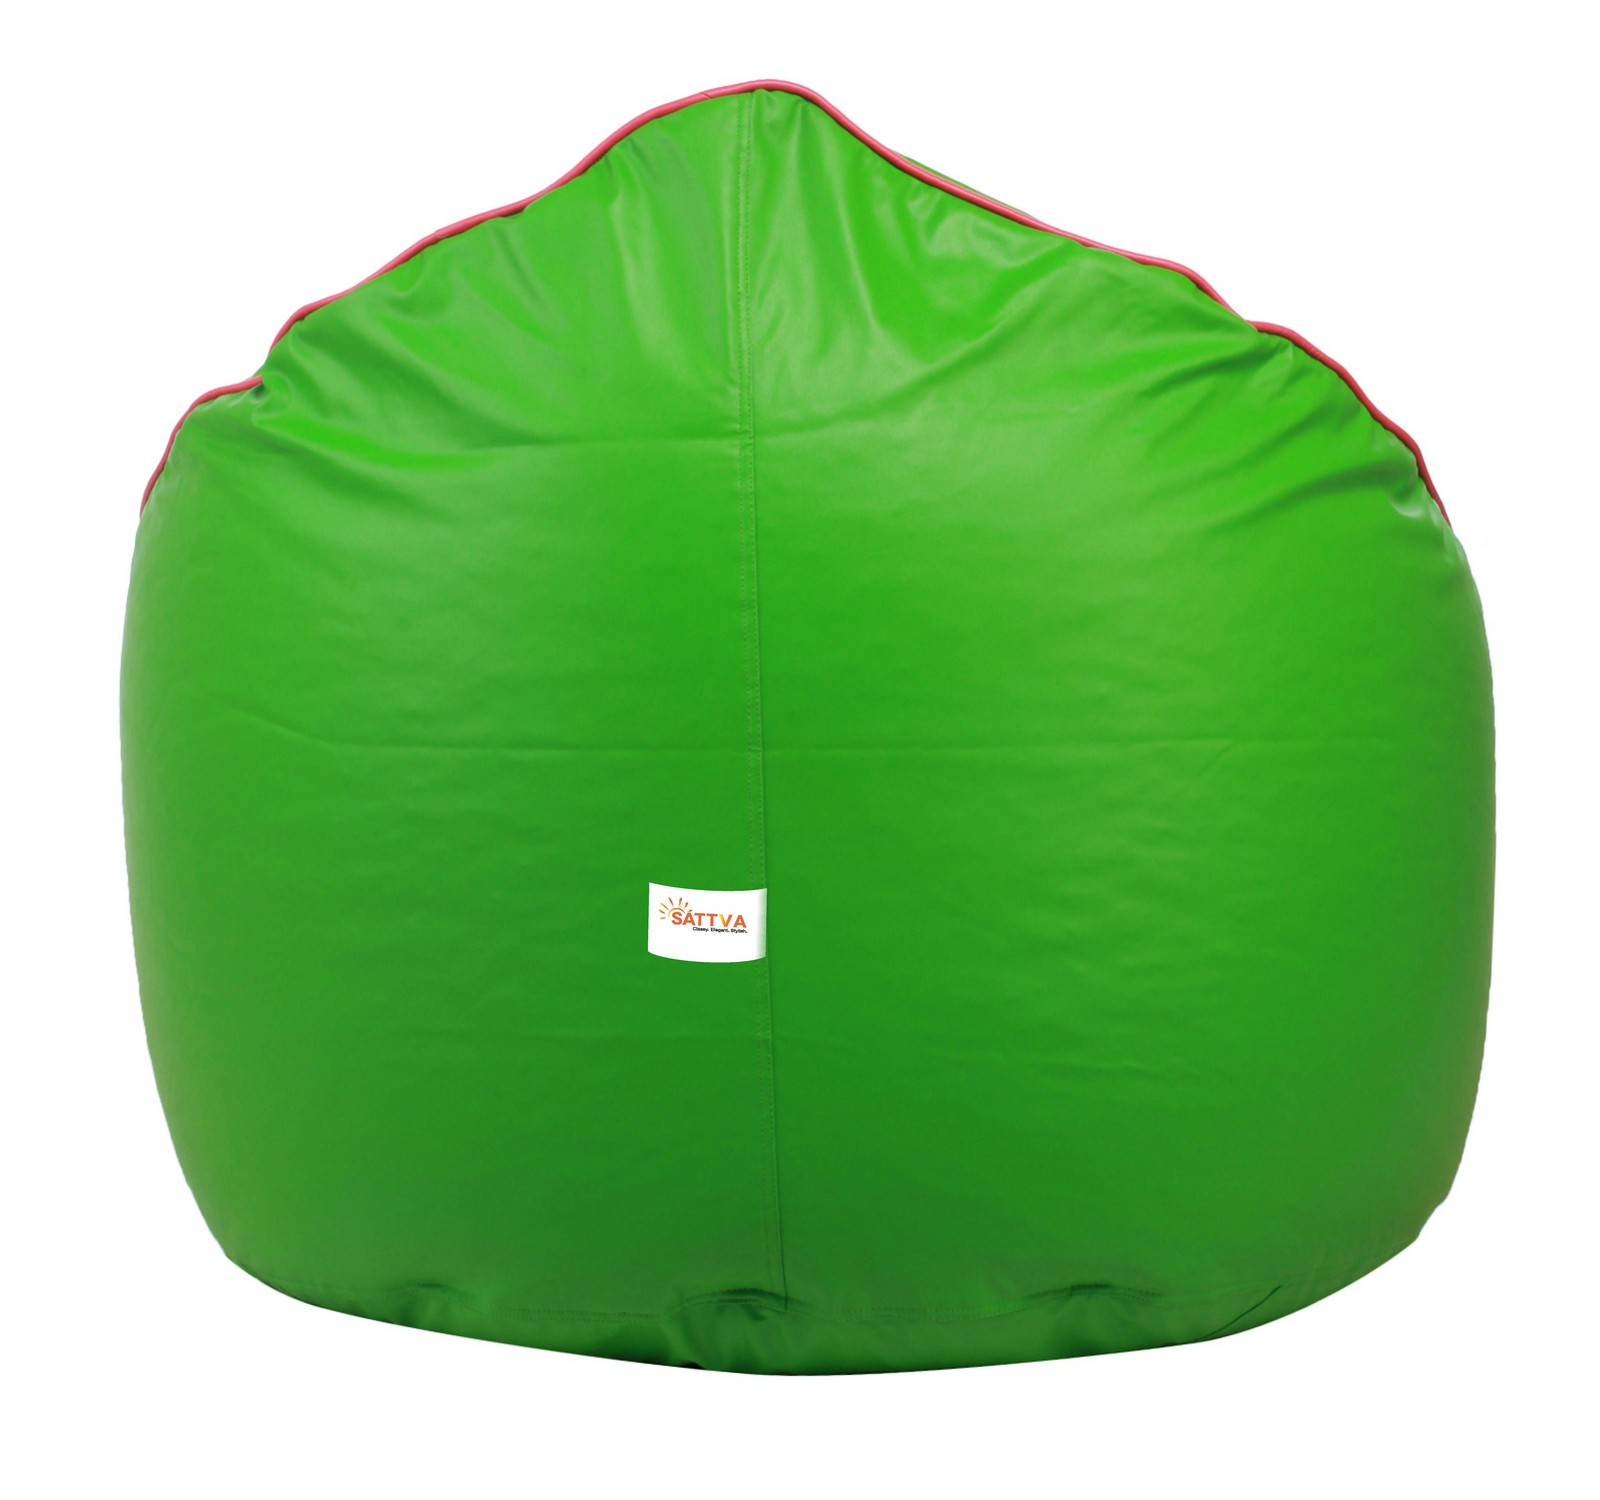 Sattva Muddha Sofa XXXL Bean Bag With Piping Design (with Beans) XXXL - Orange With Navy Blue Piping (XXXL, Neon Green With Pink Piping)